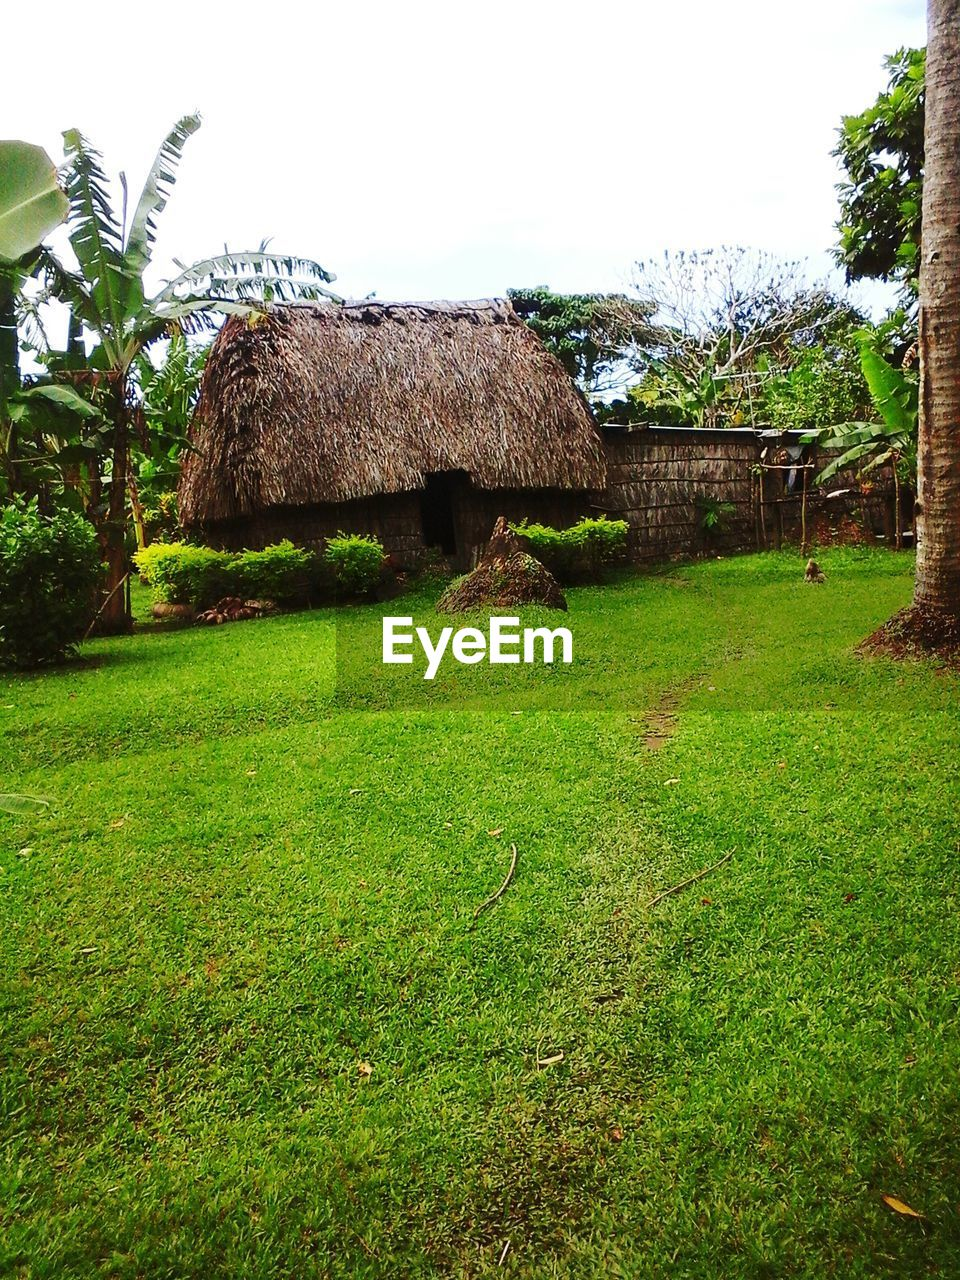 grass, green color, thatched roof, no people, day, field, growth, outdoors, nature, tree, beauty in nature, built structure, landscape, clear sky, building exterior